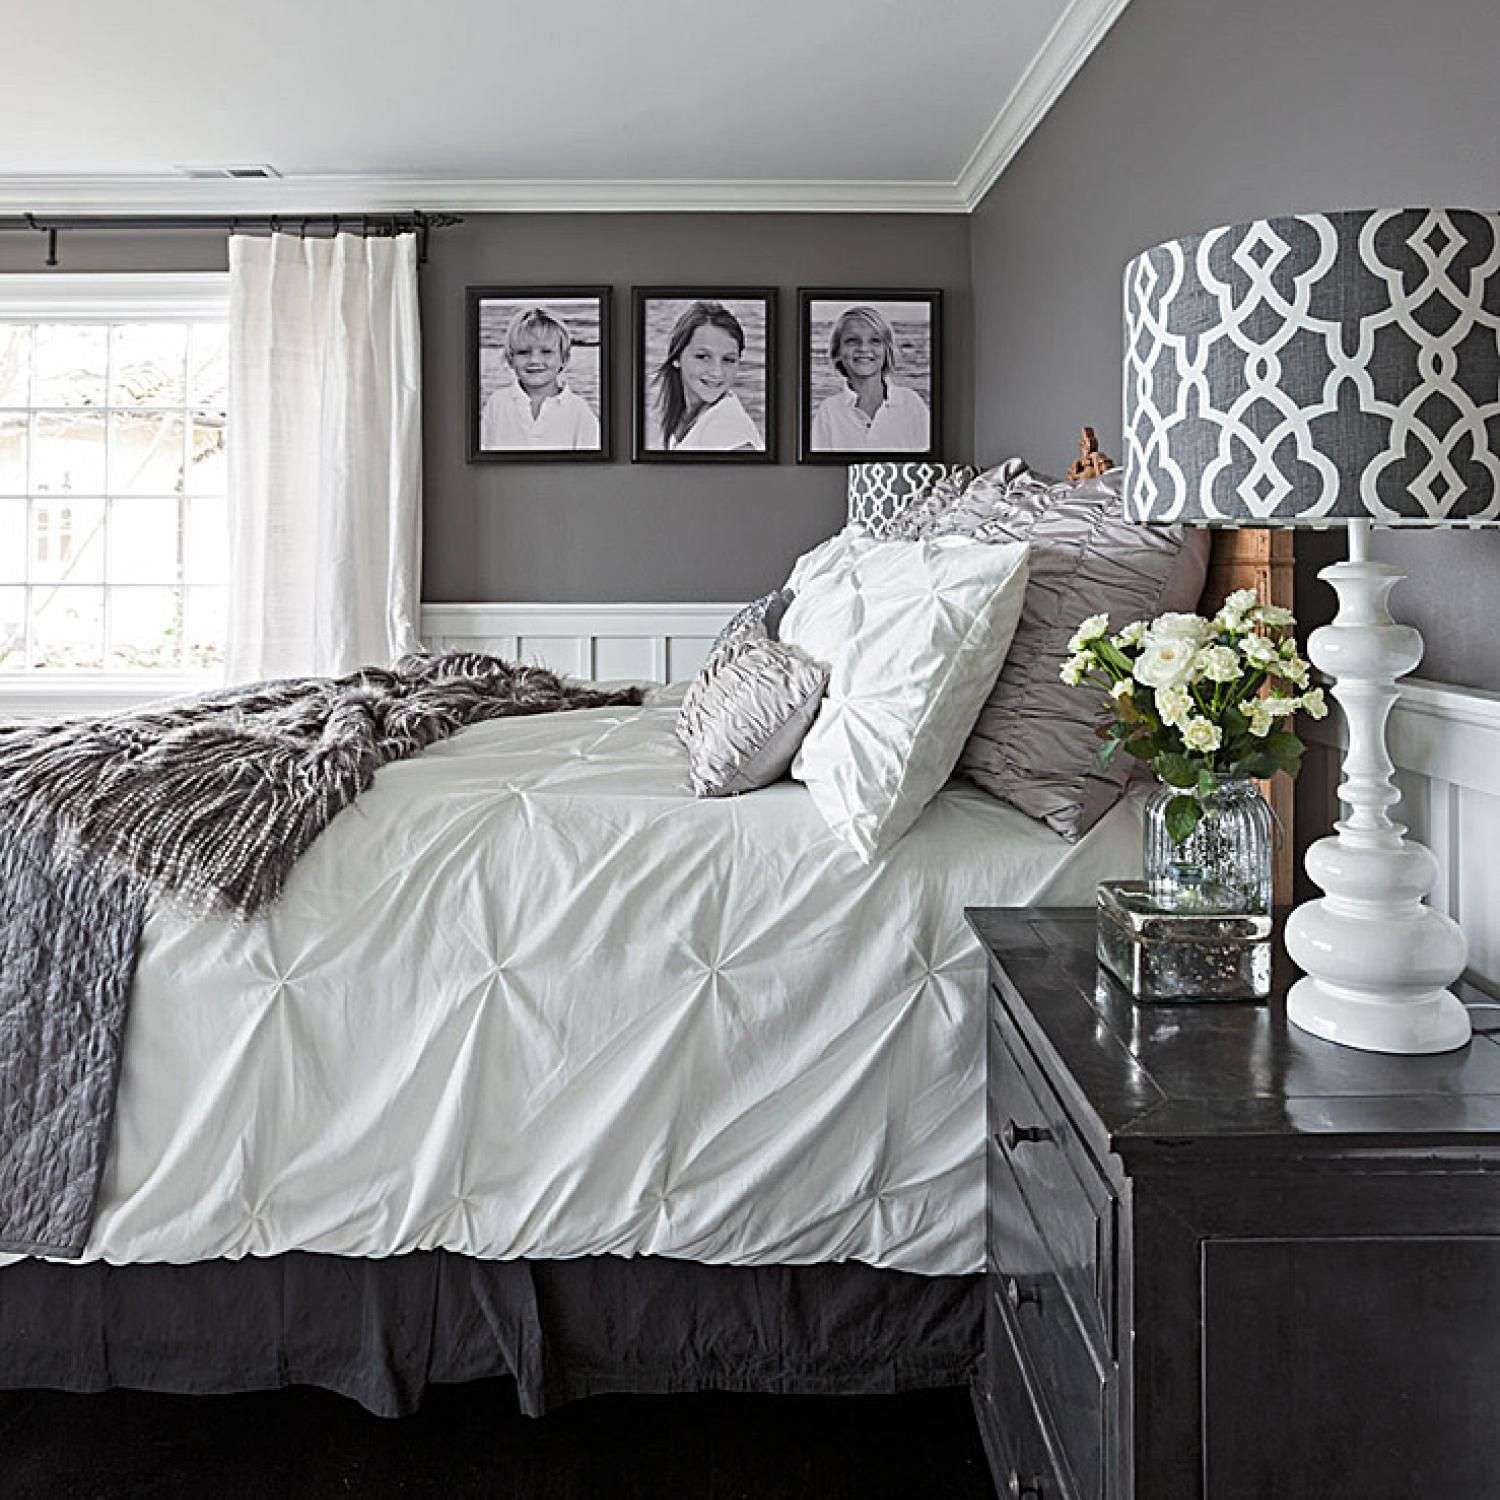 Gorgeous gray and white bedrooms bedrooms pinterest for Black and white romantic bedroom ideas